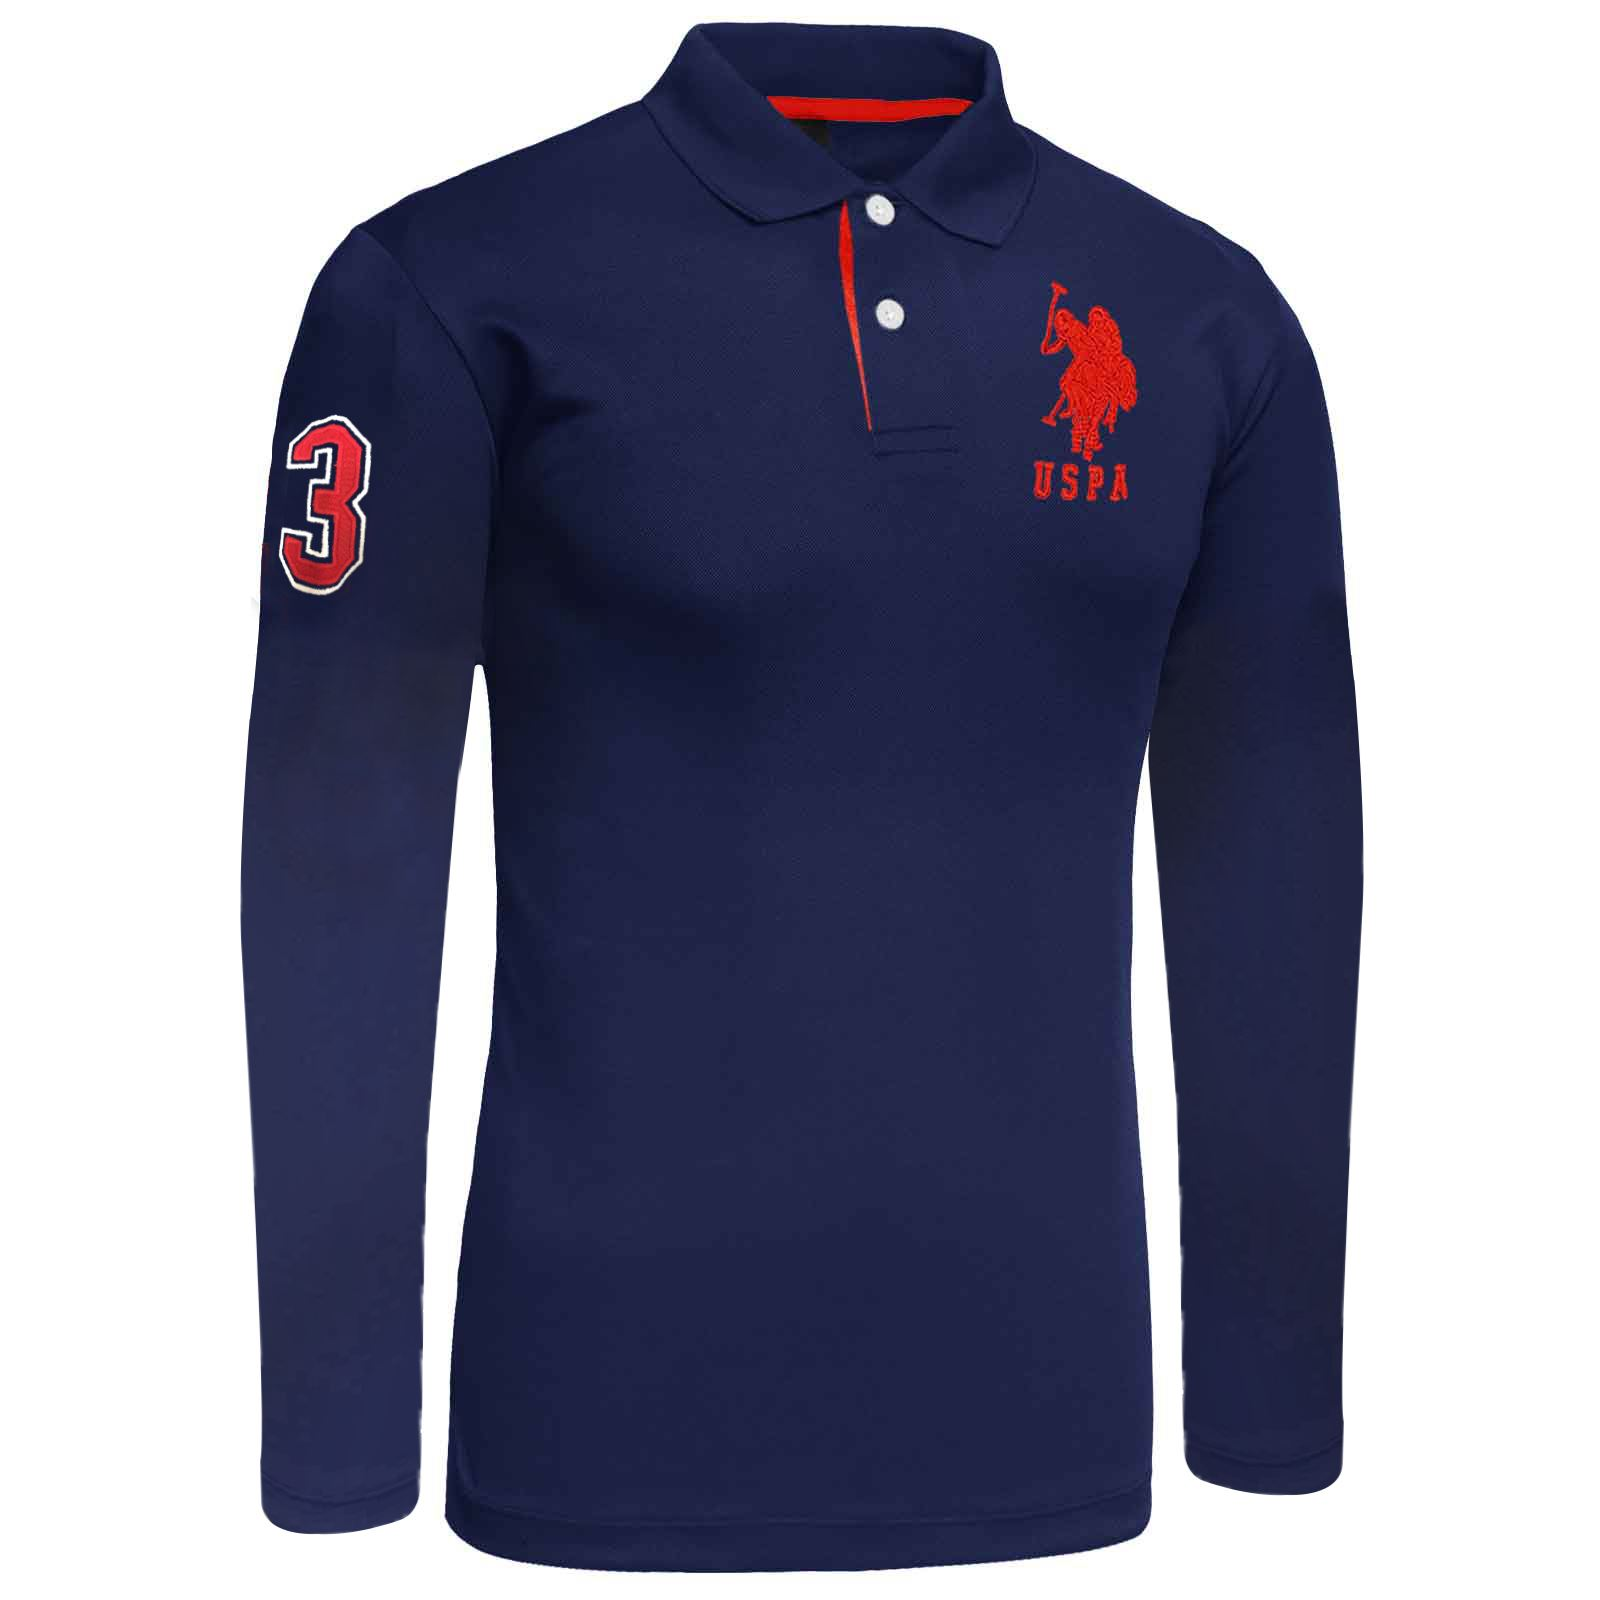 Free shipping long sleeve polo shirt online store. Best long sleeve polo shirt for sale. Cheap long sleeve polo shirt with excellent quality and fast delivery. | tokosepatu.ga